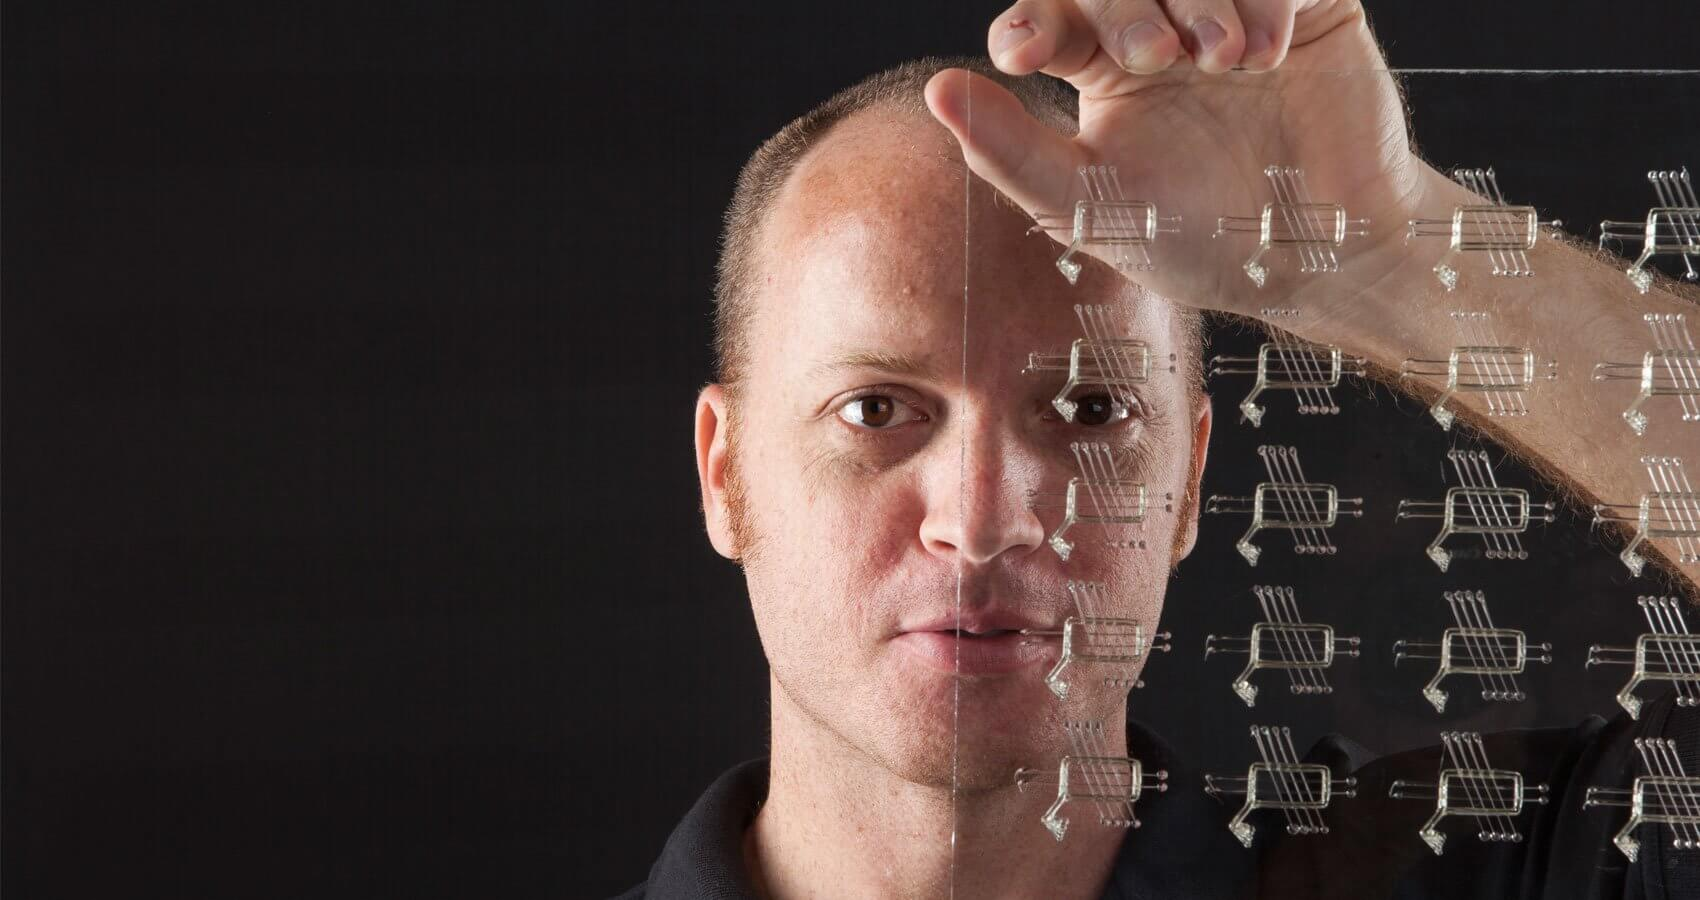 Jordan Miller and the printed 3-D sugar filament networks he developed. The scaffolds combine with living cells to promote oxygen deliver to engineered tissue.